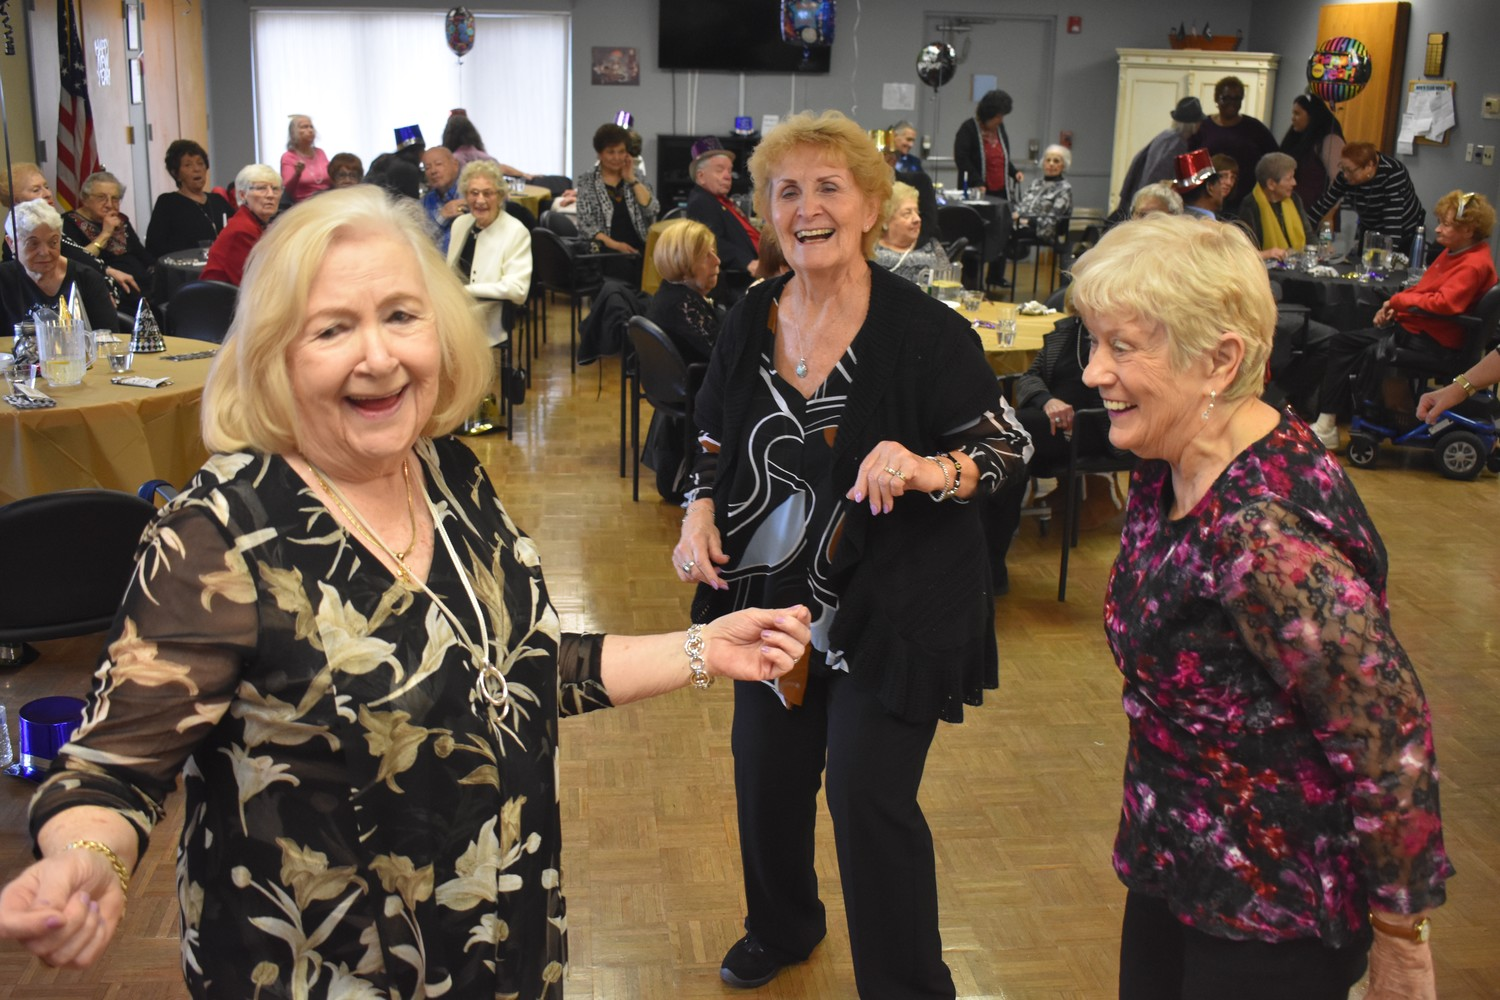 Helen Gemnell, left, Marge DePhillips and Pat Turner danced the afternoon away at the Sandel Senior Center's New Year's party on Jan. 4.